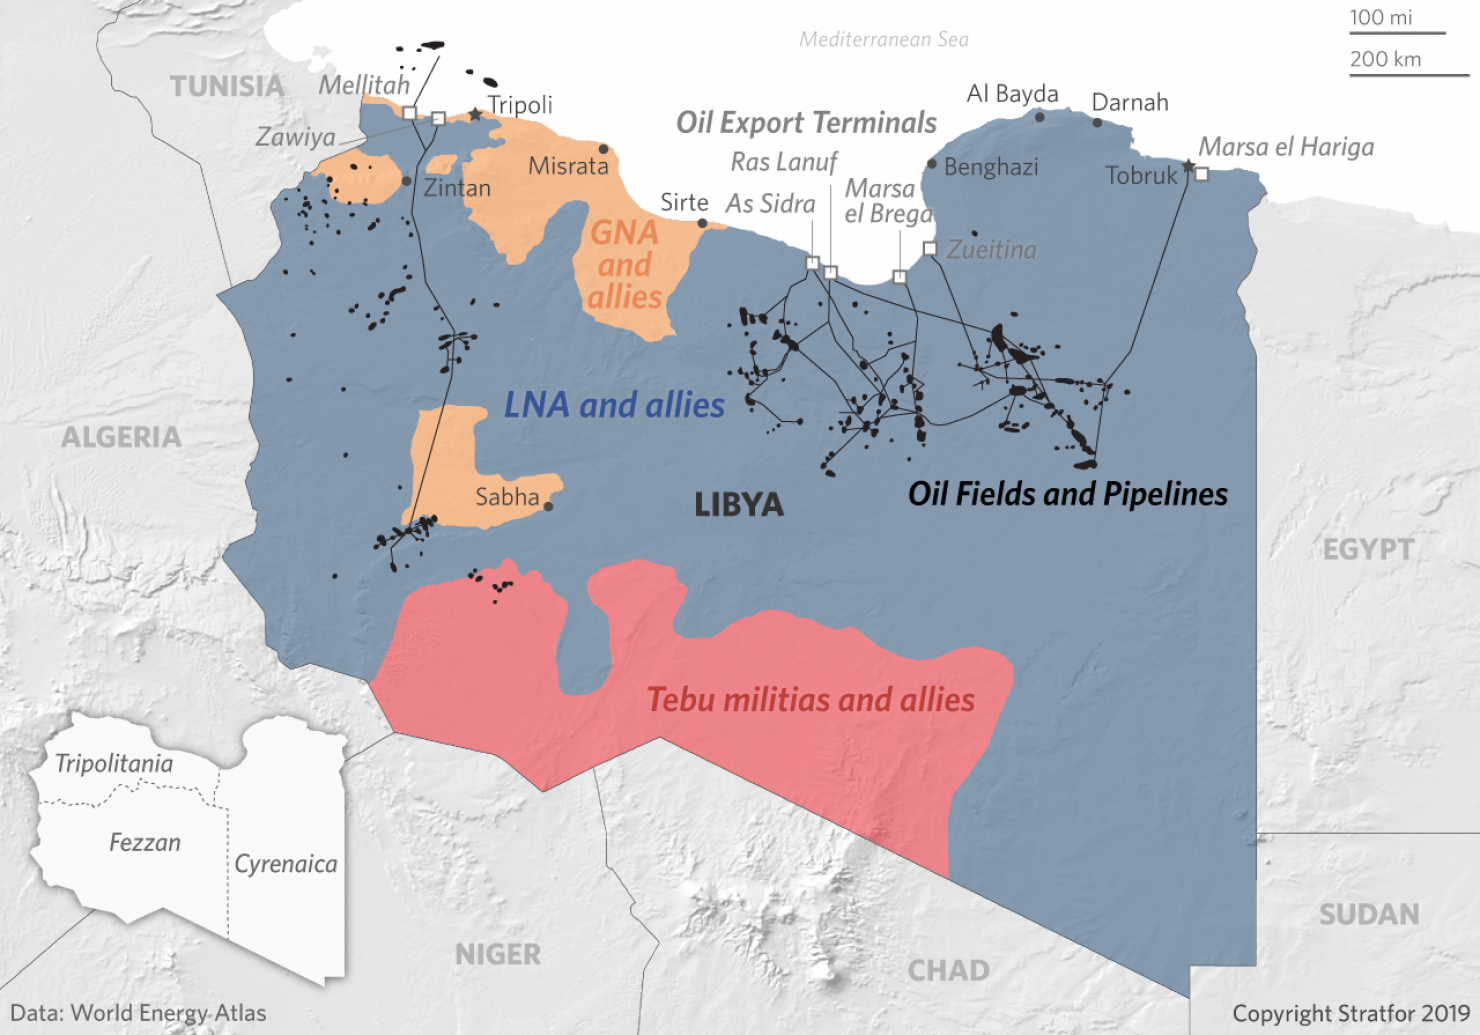 In Libya, A New Offensive Could Disrupt the Oil Industry's